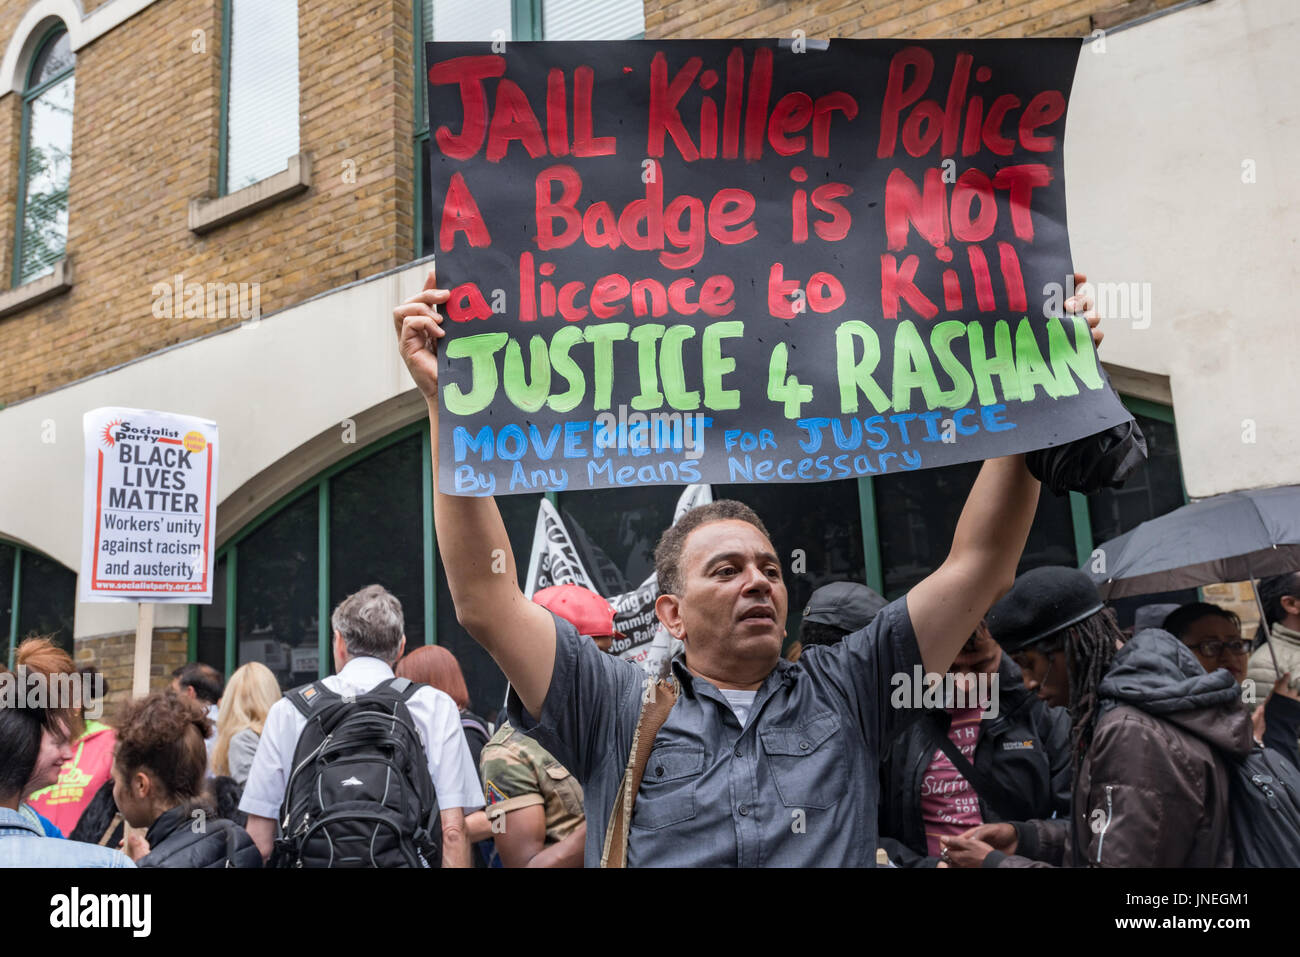 July 29, 2017 - London, UK - London, UK. 29th July 2017. A Movement for Justice member holds up a poster calling - Stock Image